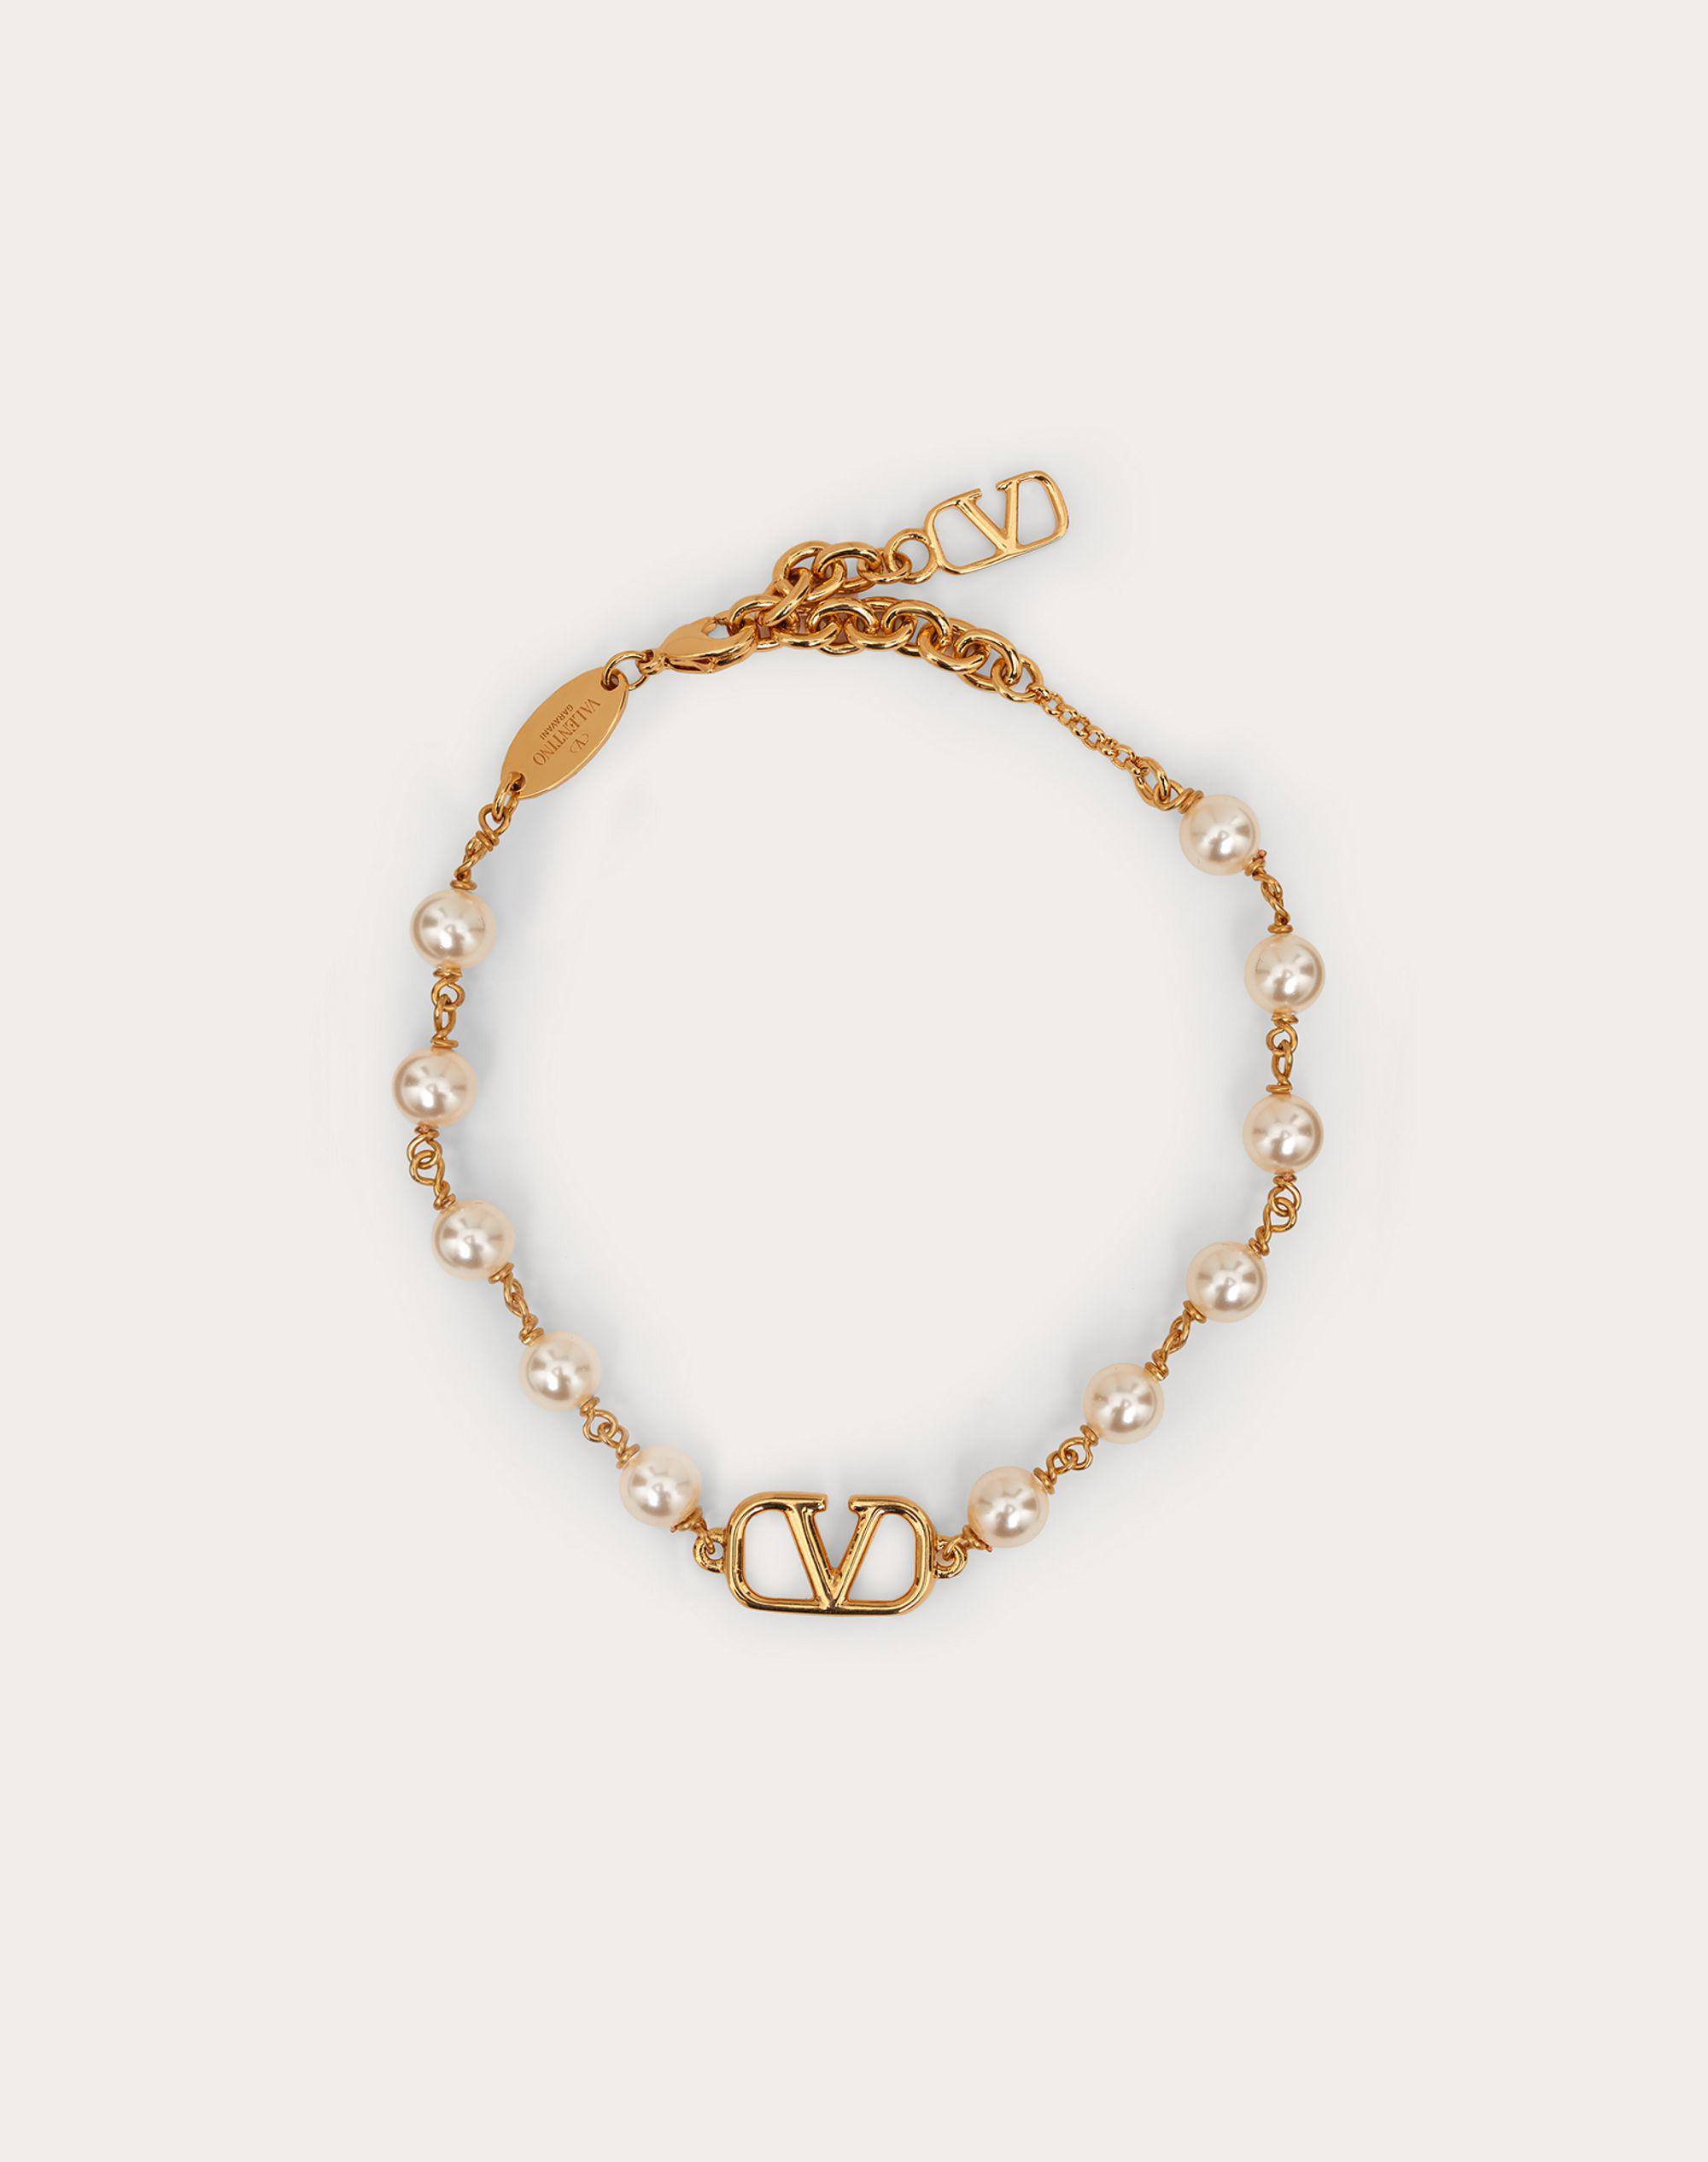 VLogo Signature Bracelet with Pearls